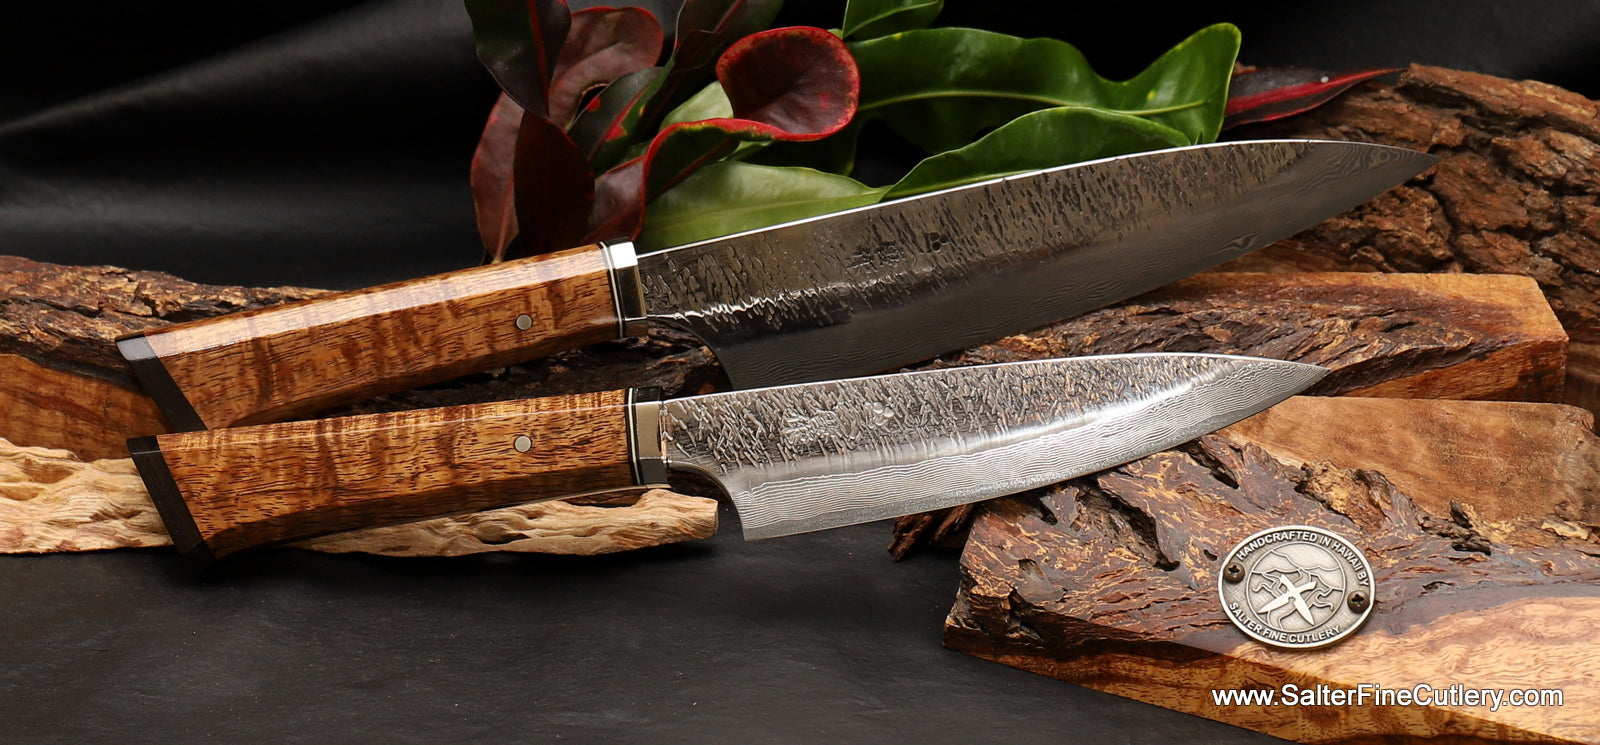 Raptor Series kitchen knives with your choice of handles from Salter Fine Cutlery of Hawaii